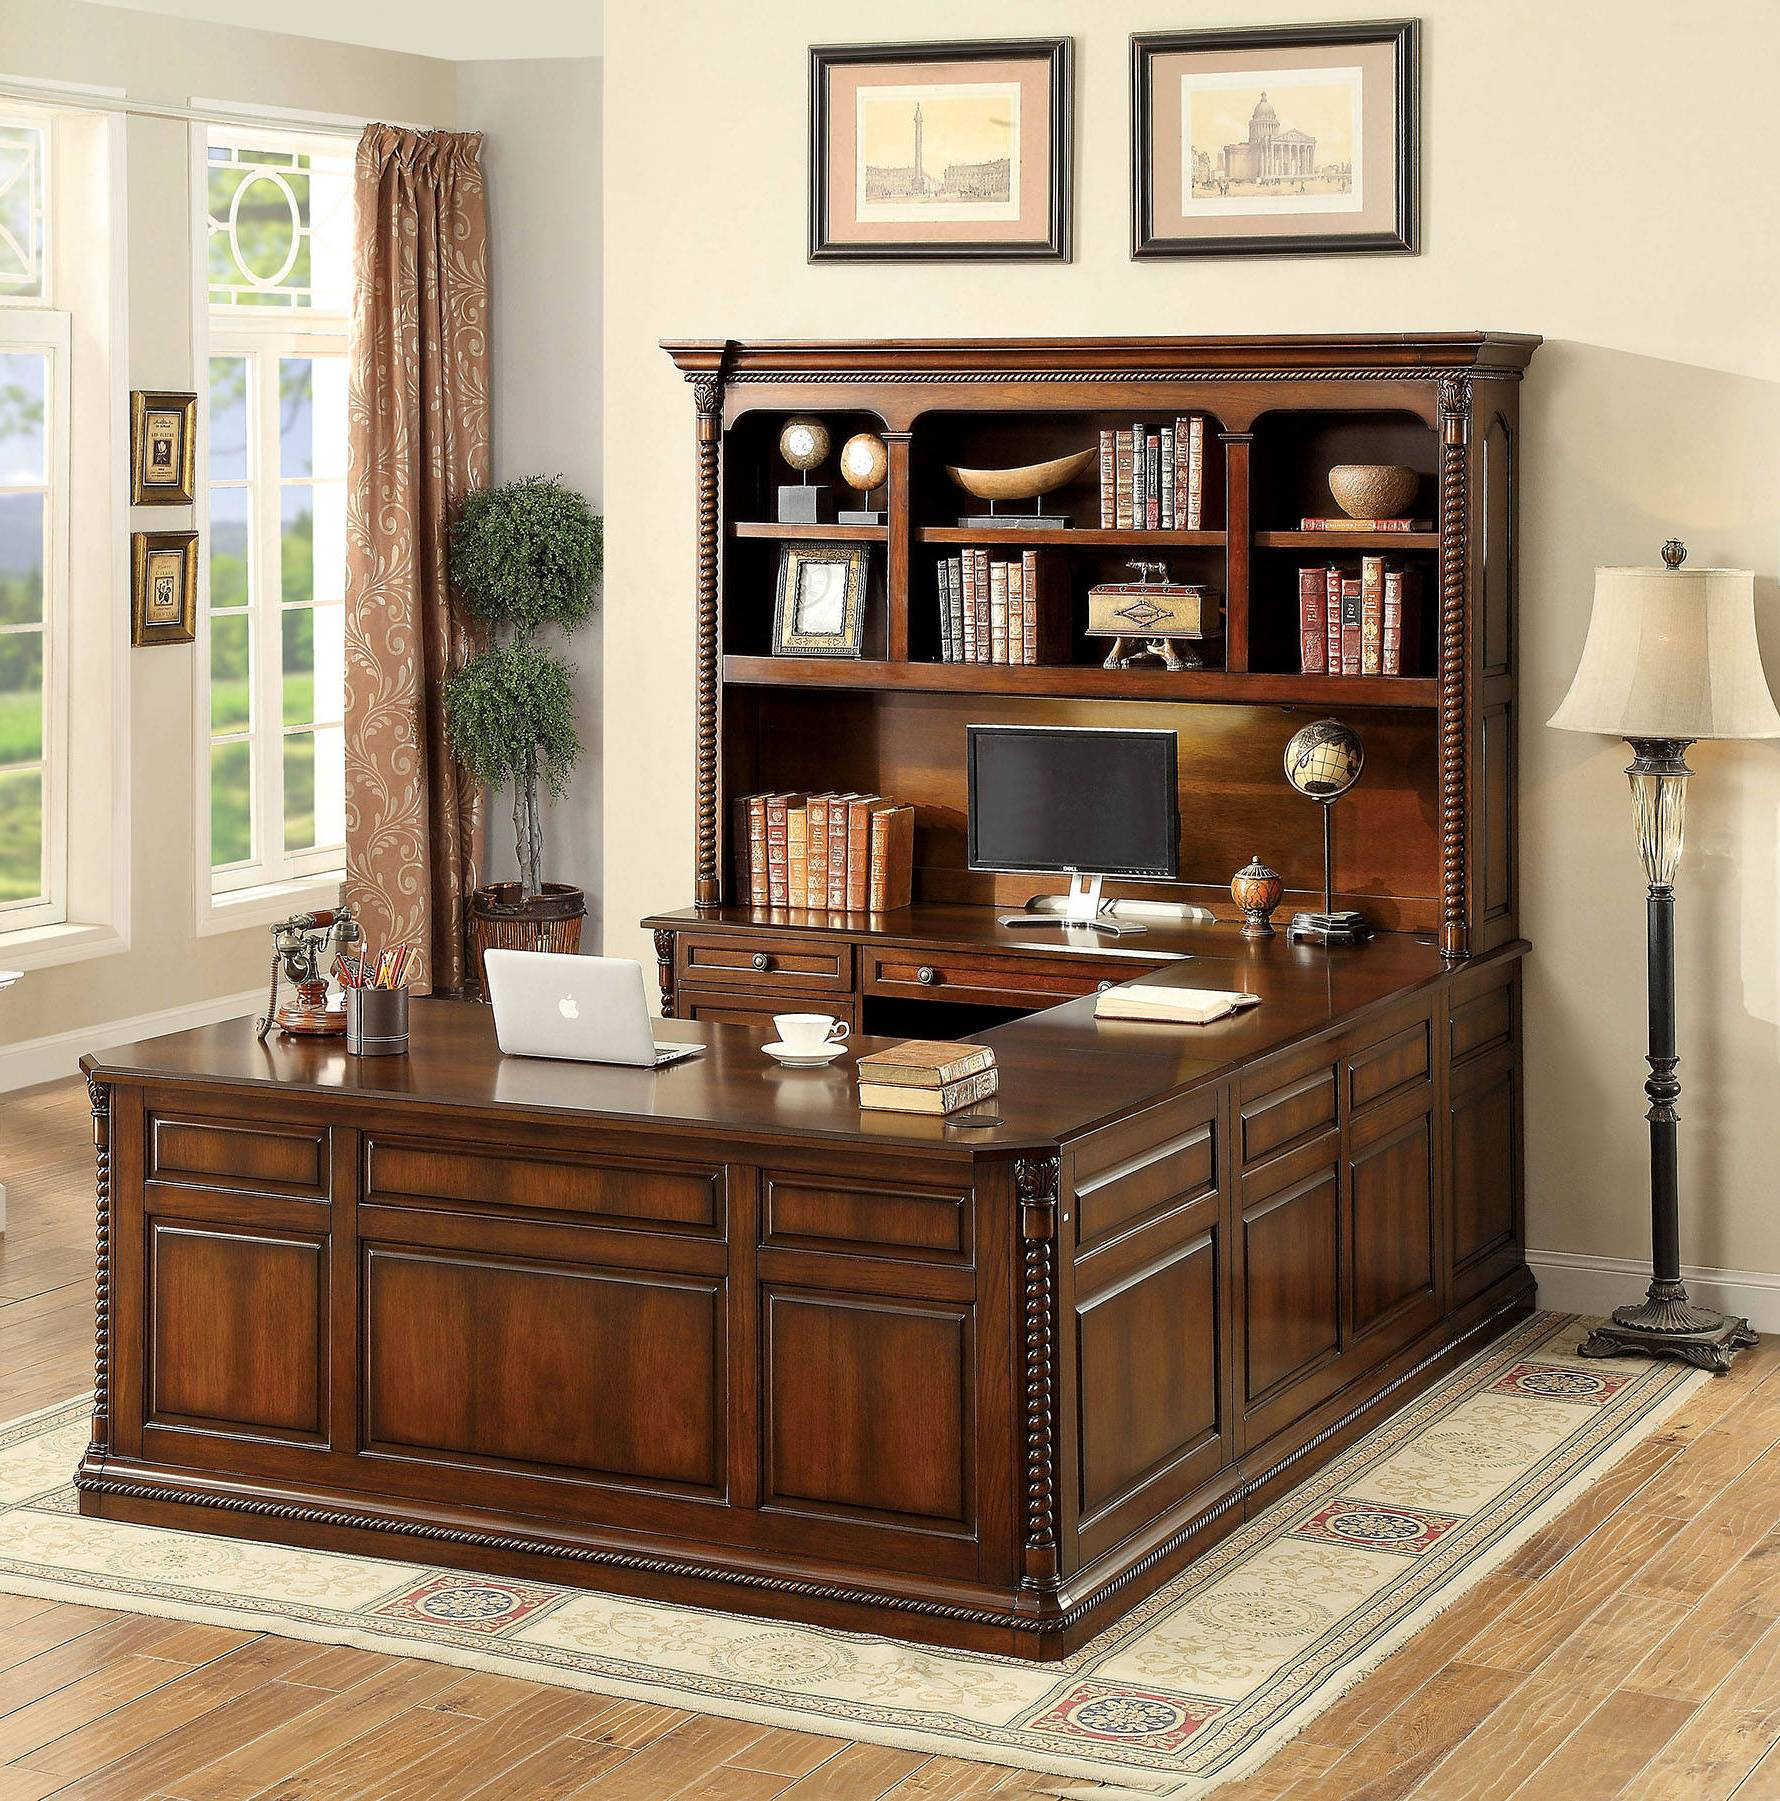 Home Office Sets Office Furniture Elements: Furniture Of America Lavinia 4pc Office Furniture Set